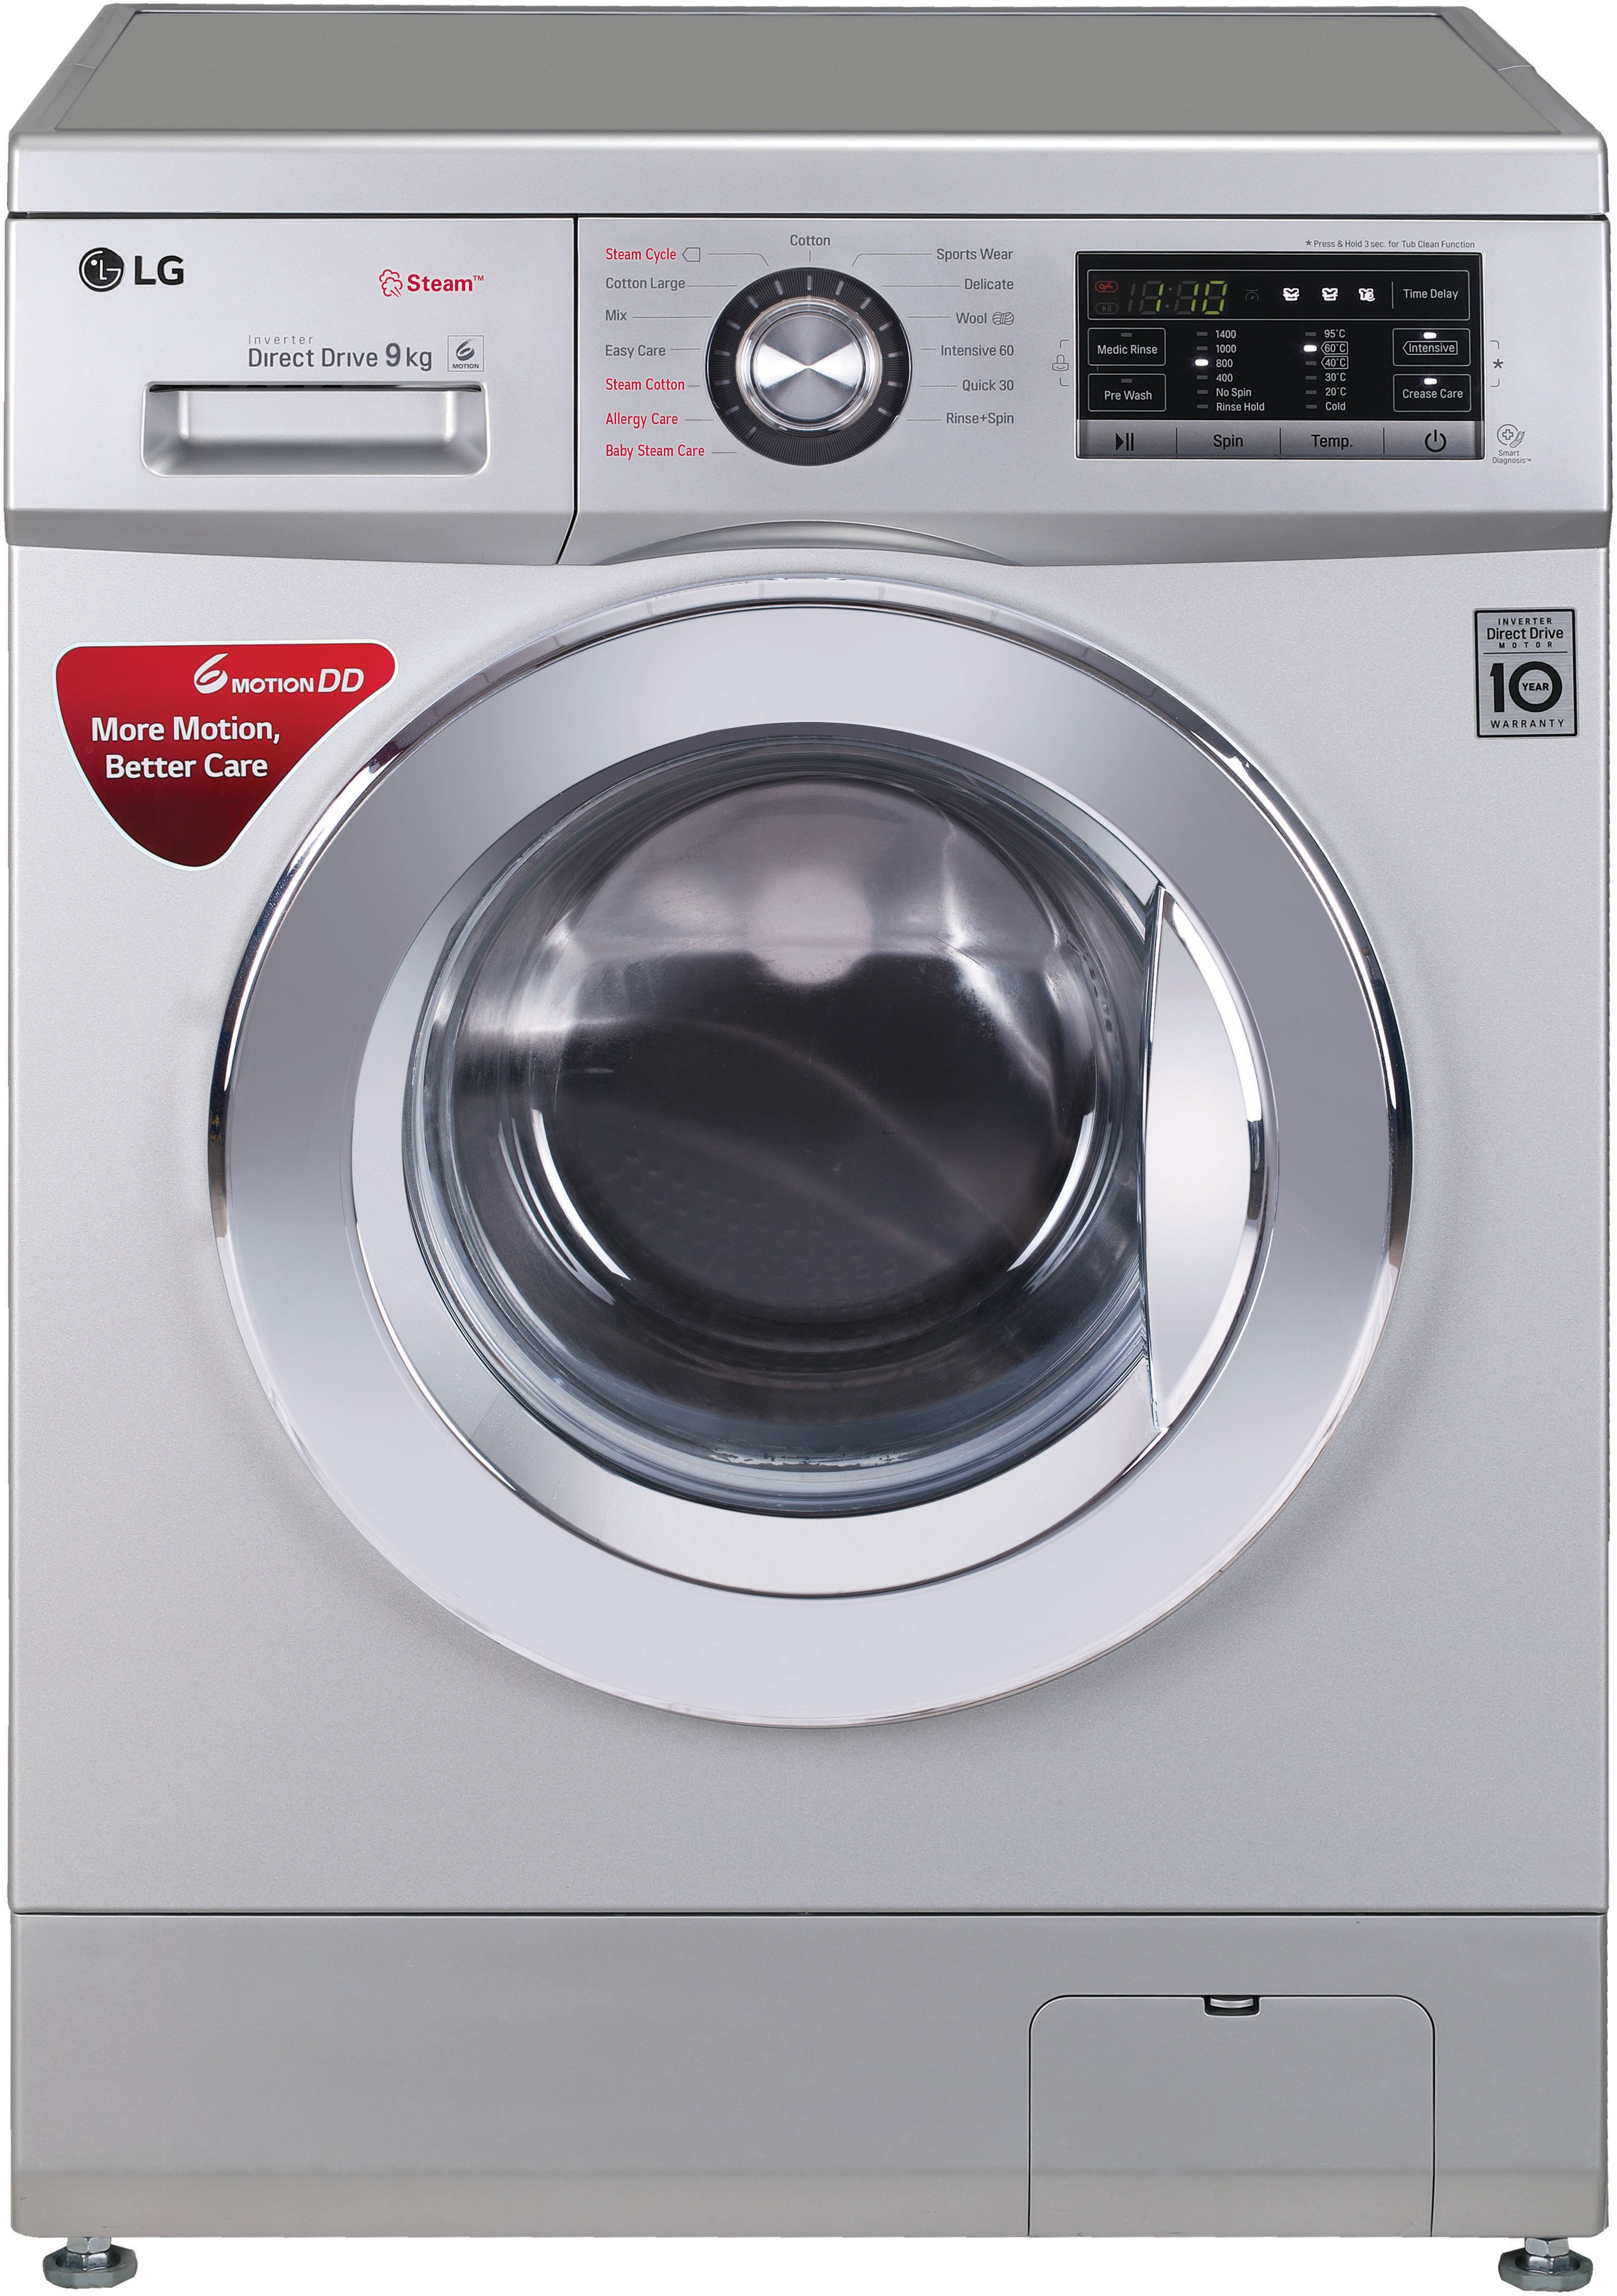 LG 9 kg Fully Automatic Front Load Washing Machine (FH4G6VDYL42) Image